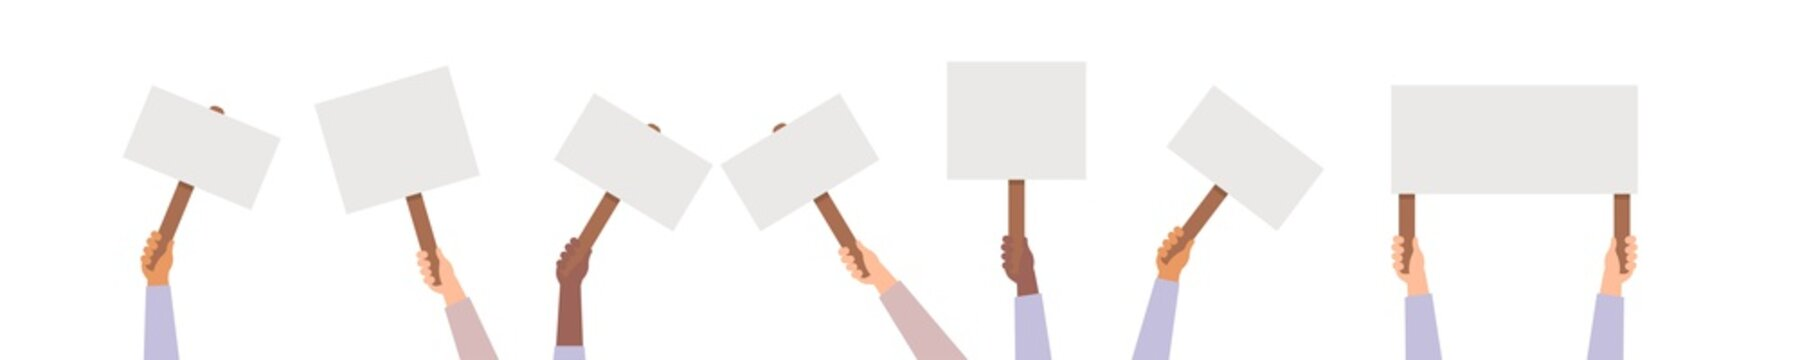 Hand holding protest posters vector, rebel placards in hands people activist crowd illustration.